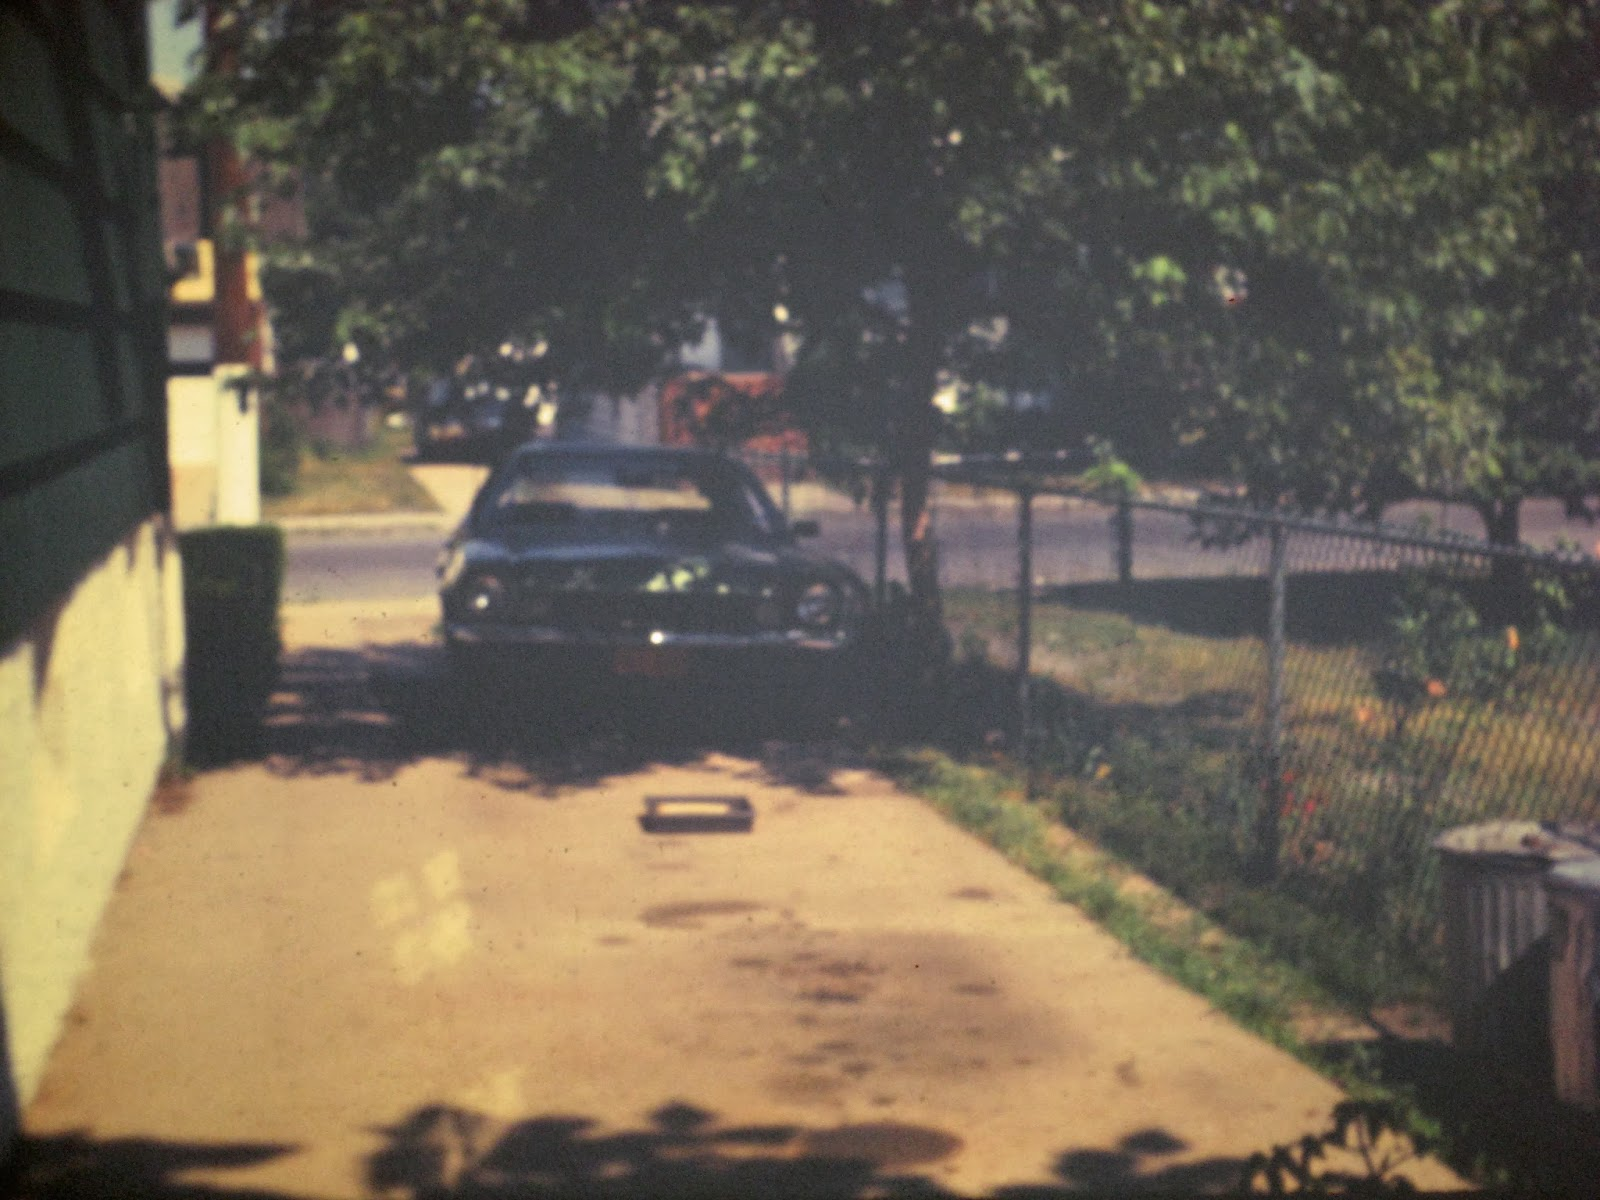 336 Simonson driveway with old Pinto in it... LoL July 1976